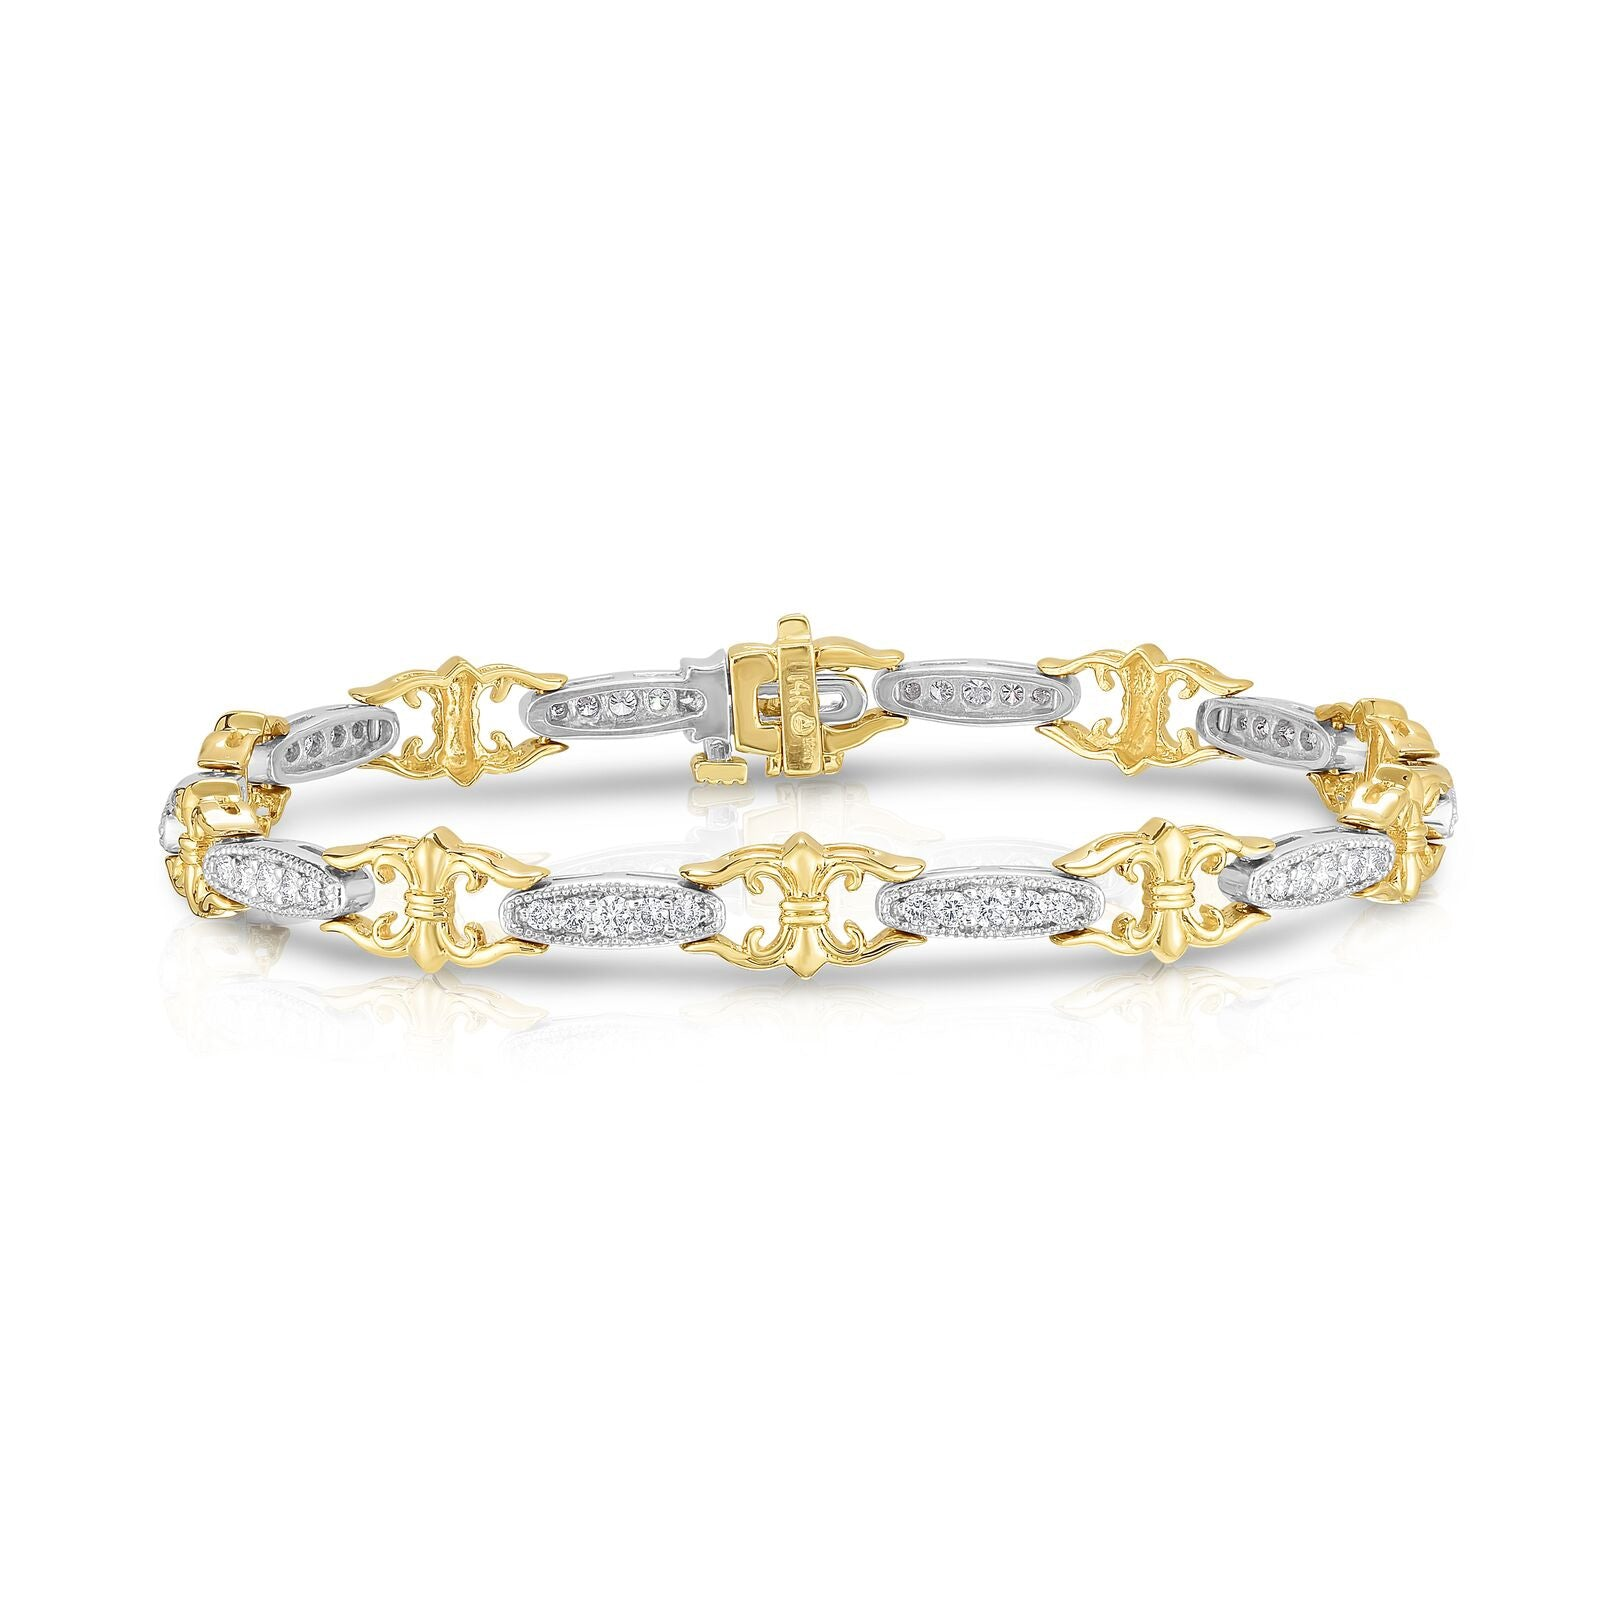 Two Tone Fancy Diamond Link Bracelet, 14 Karat Gold